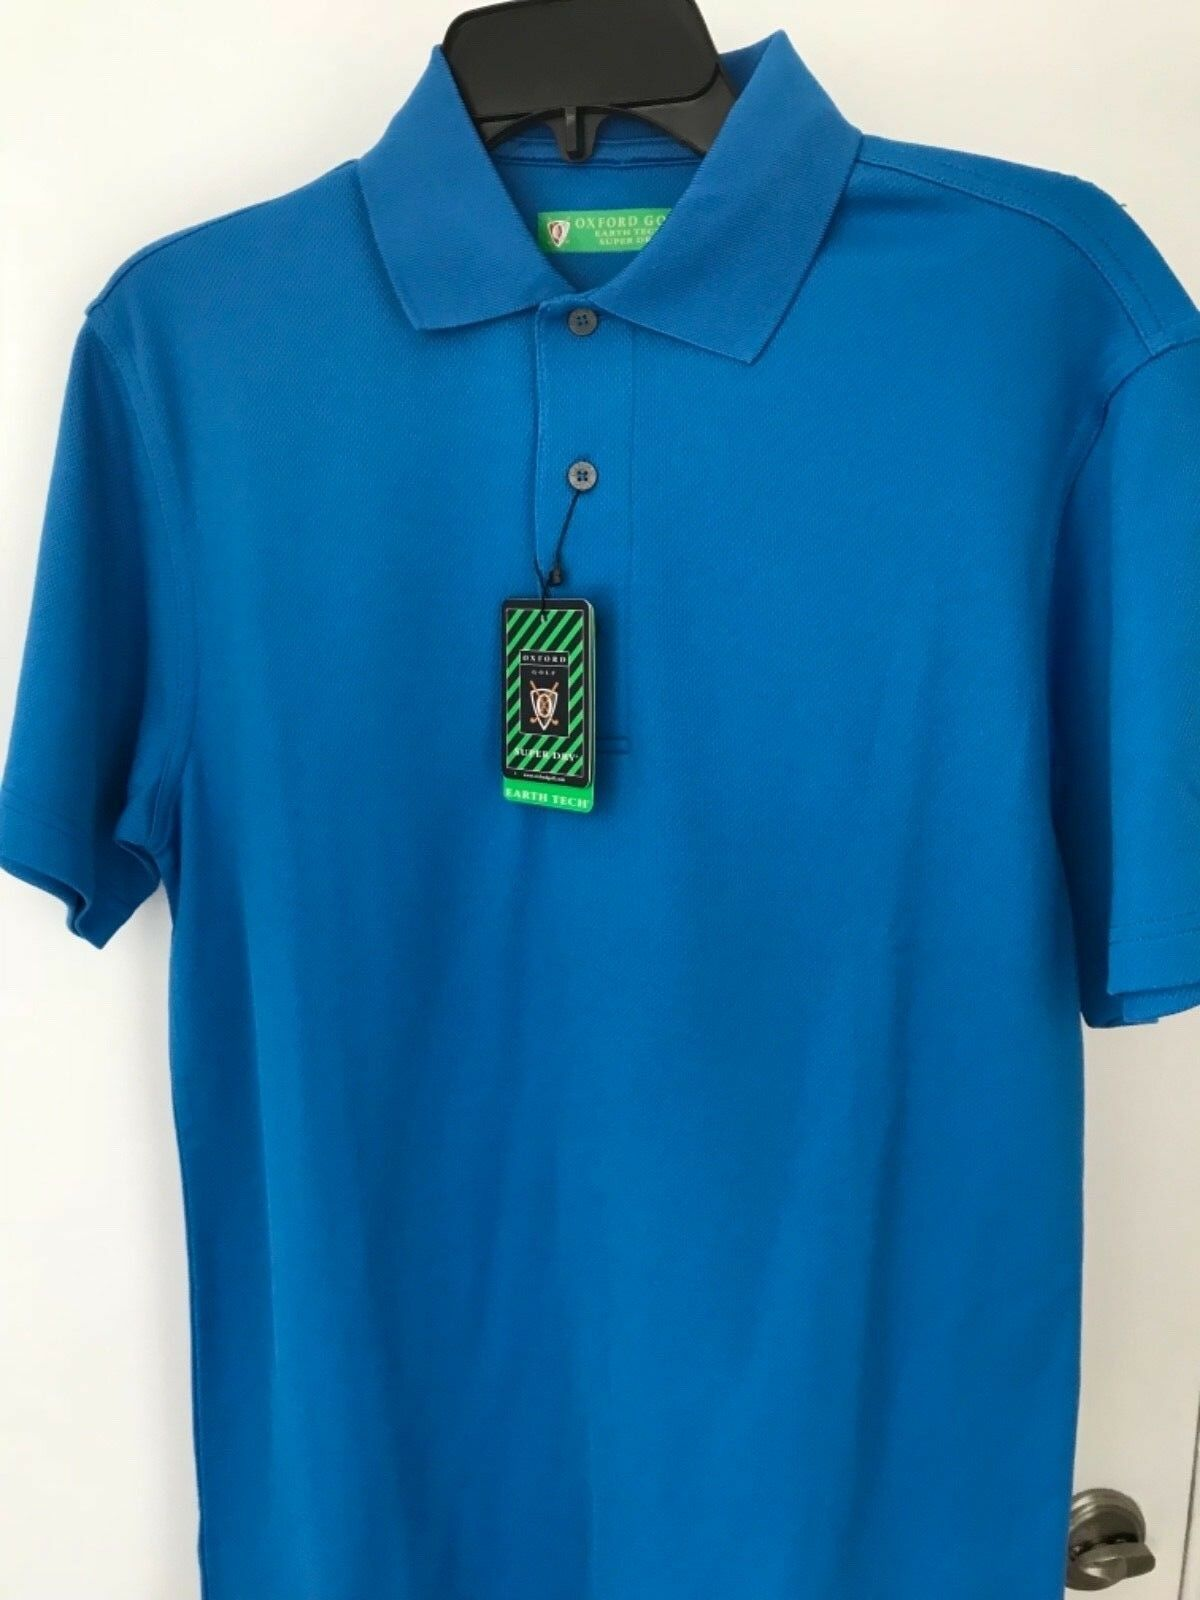 Oxford Golf Tierra Tech HOMBRE XS Azul Manga Corta Polo Nwt